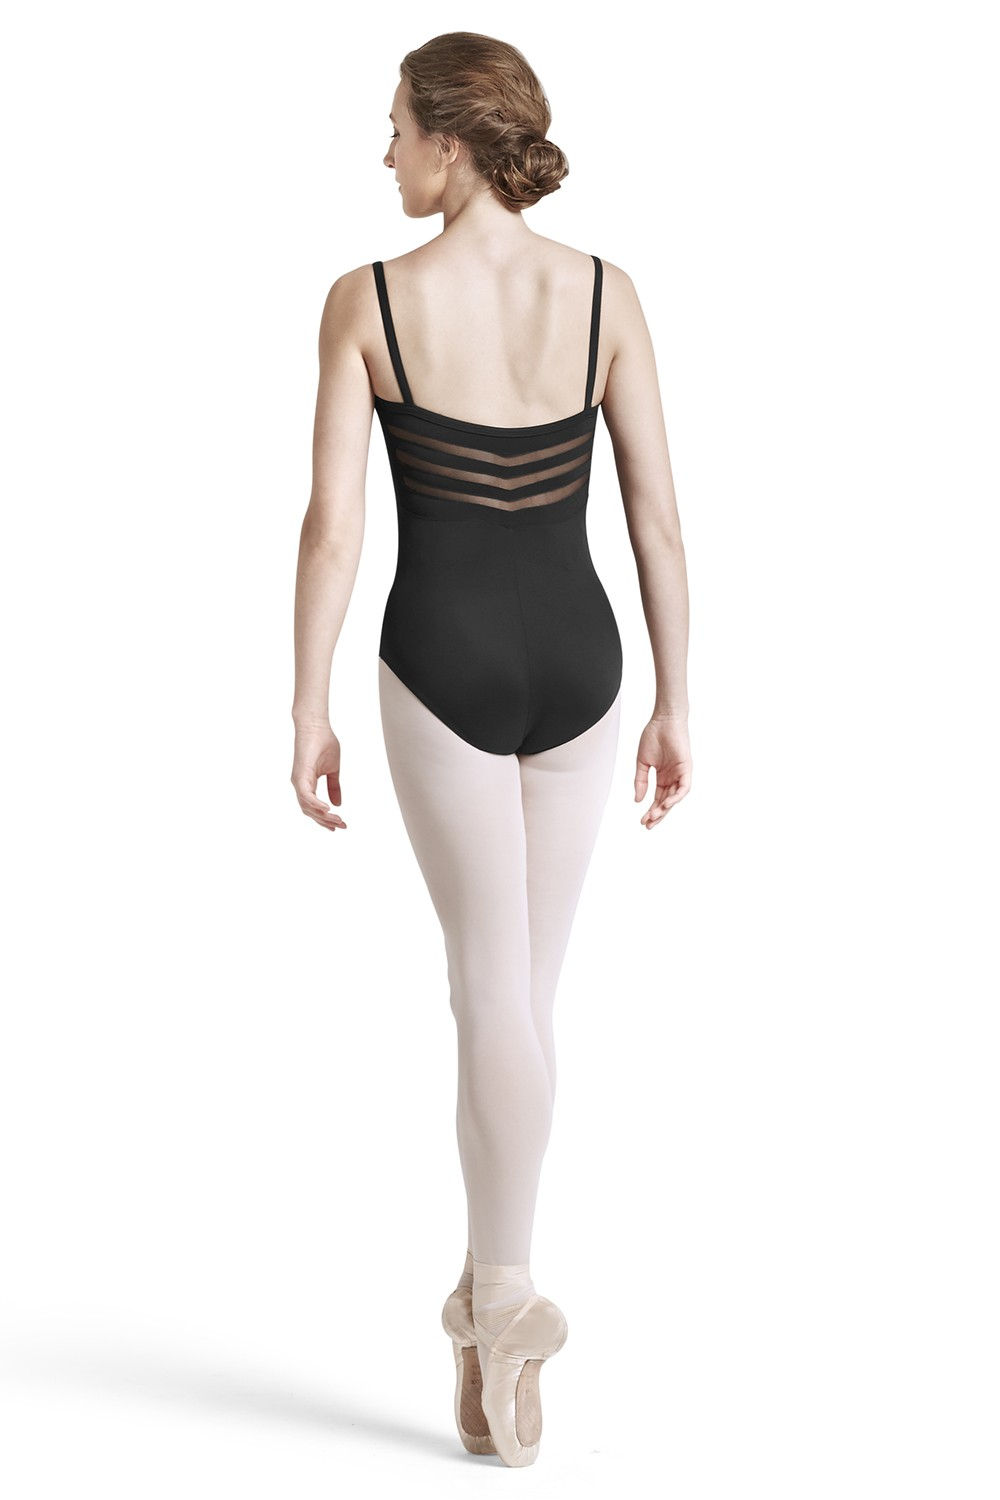 Geetha Women's Dance Leotards